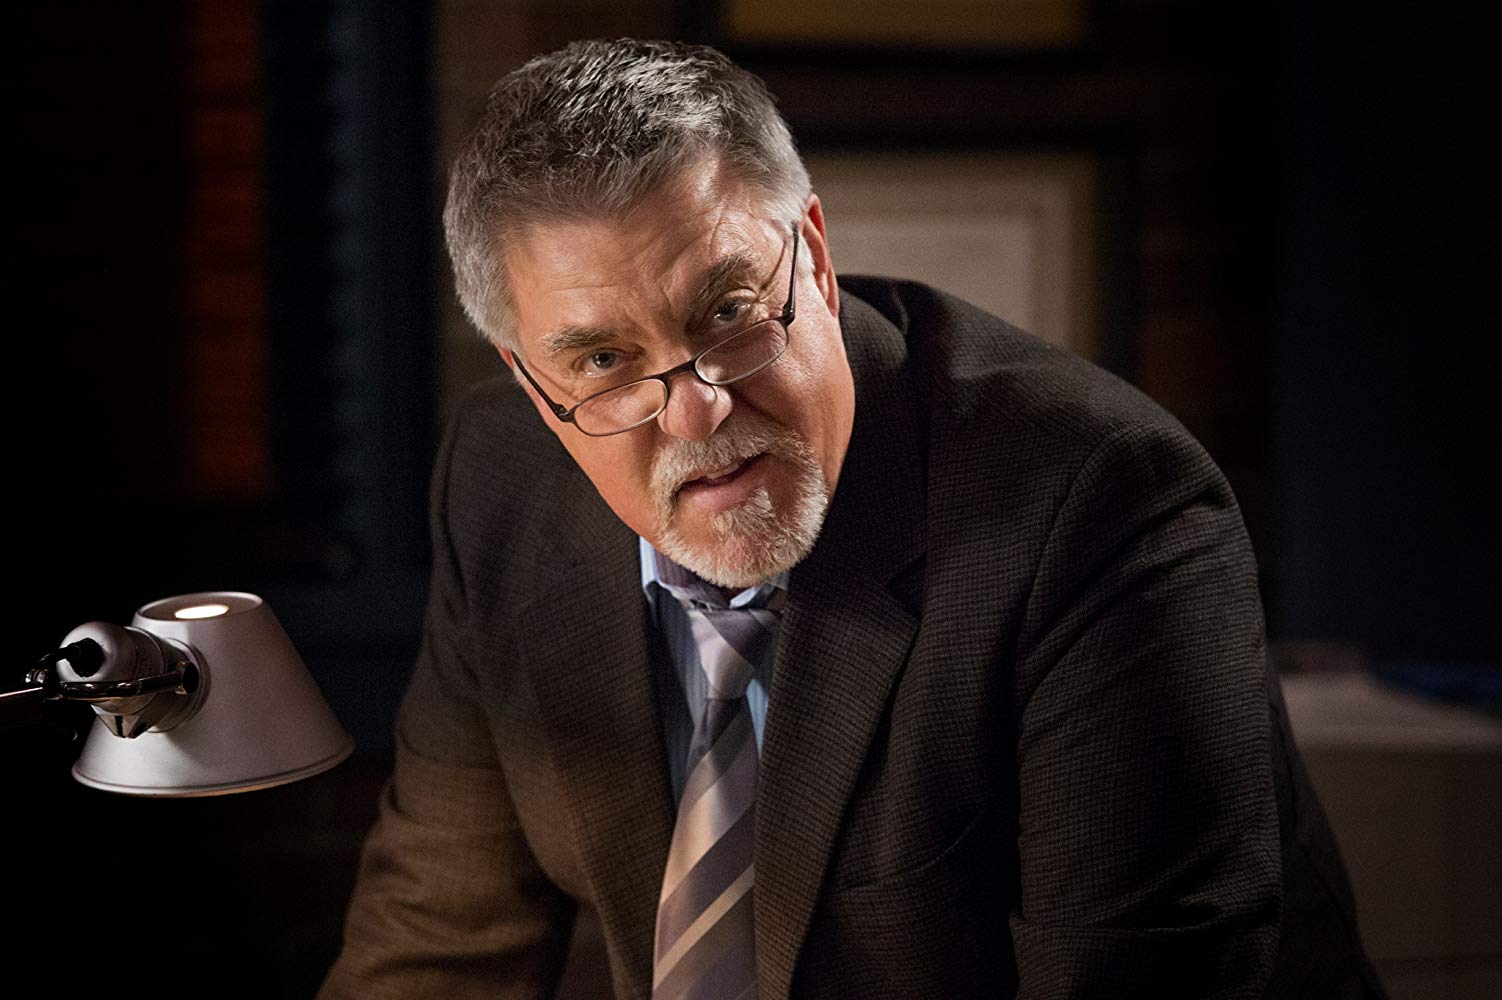 A promo pic of McGill. He is wearing a brown suit and glasses as he looks at the camera